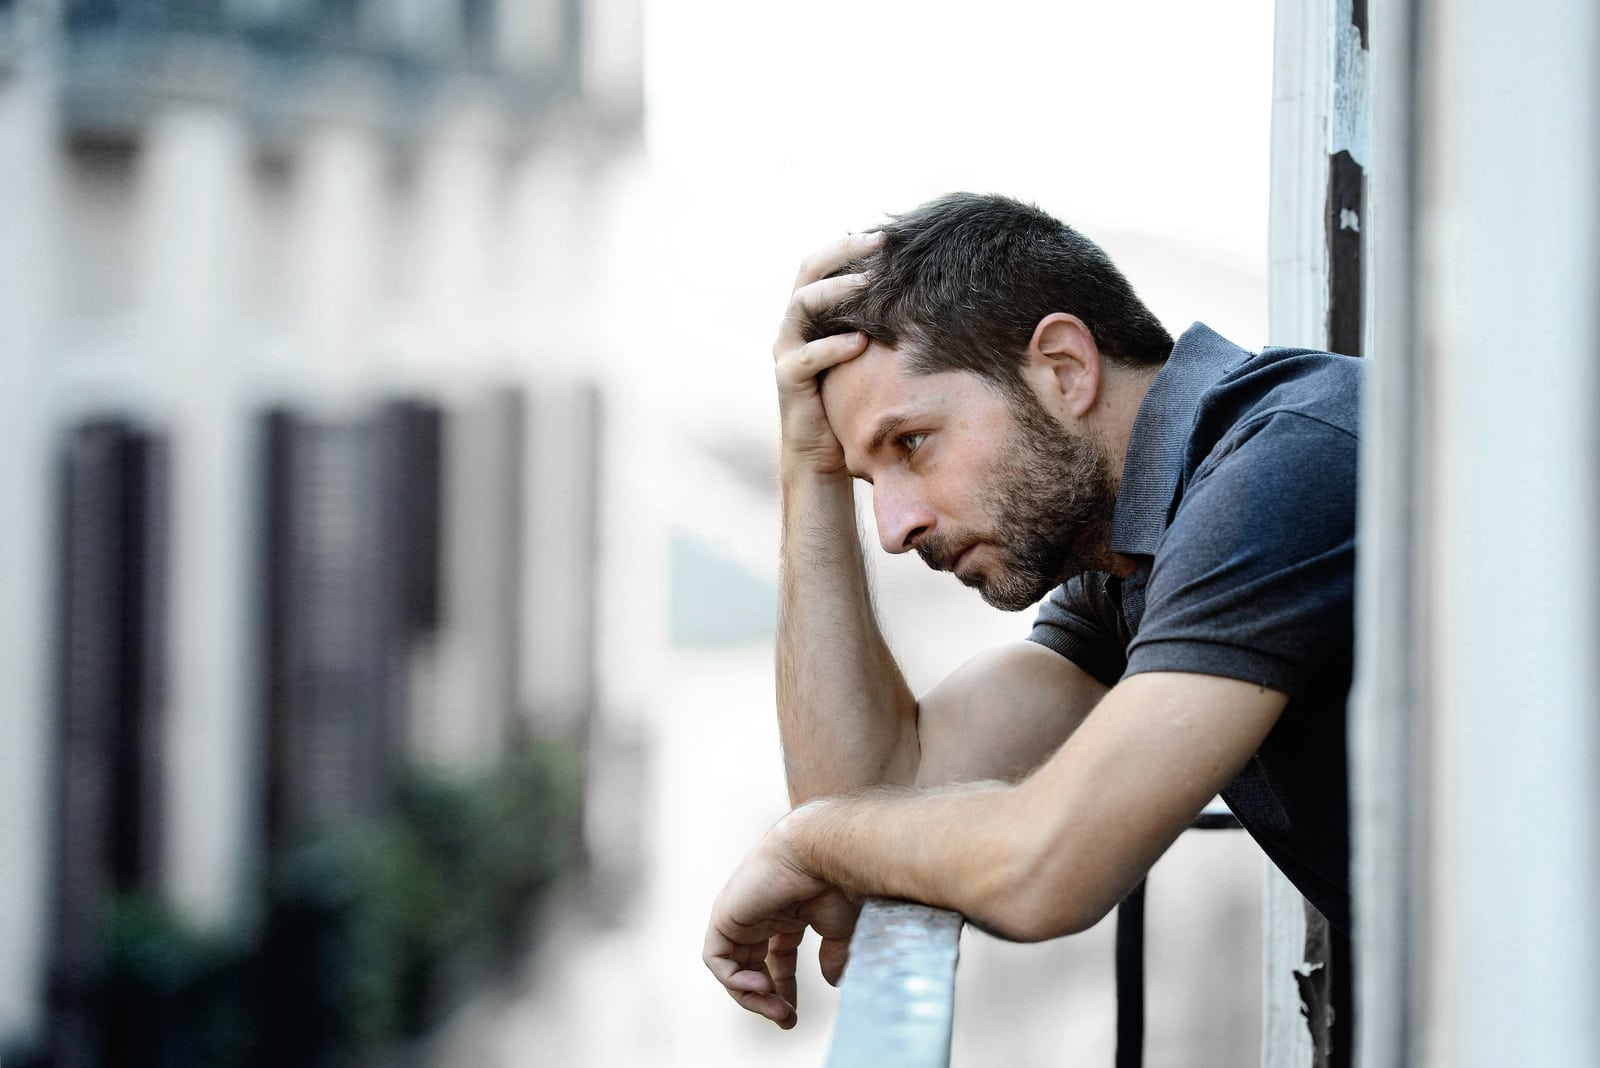 man outside at house balcony alone looking depressed